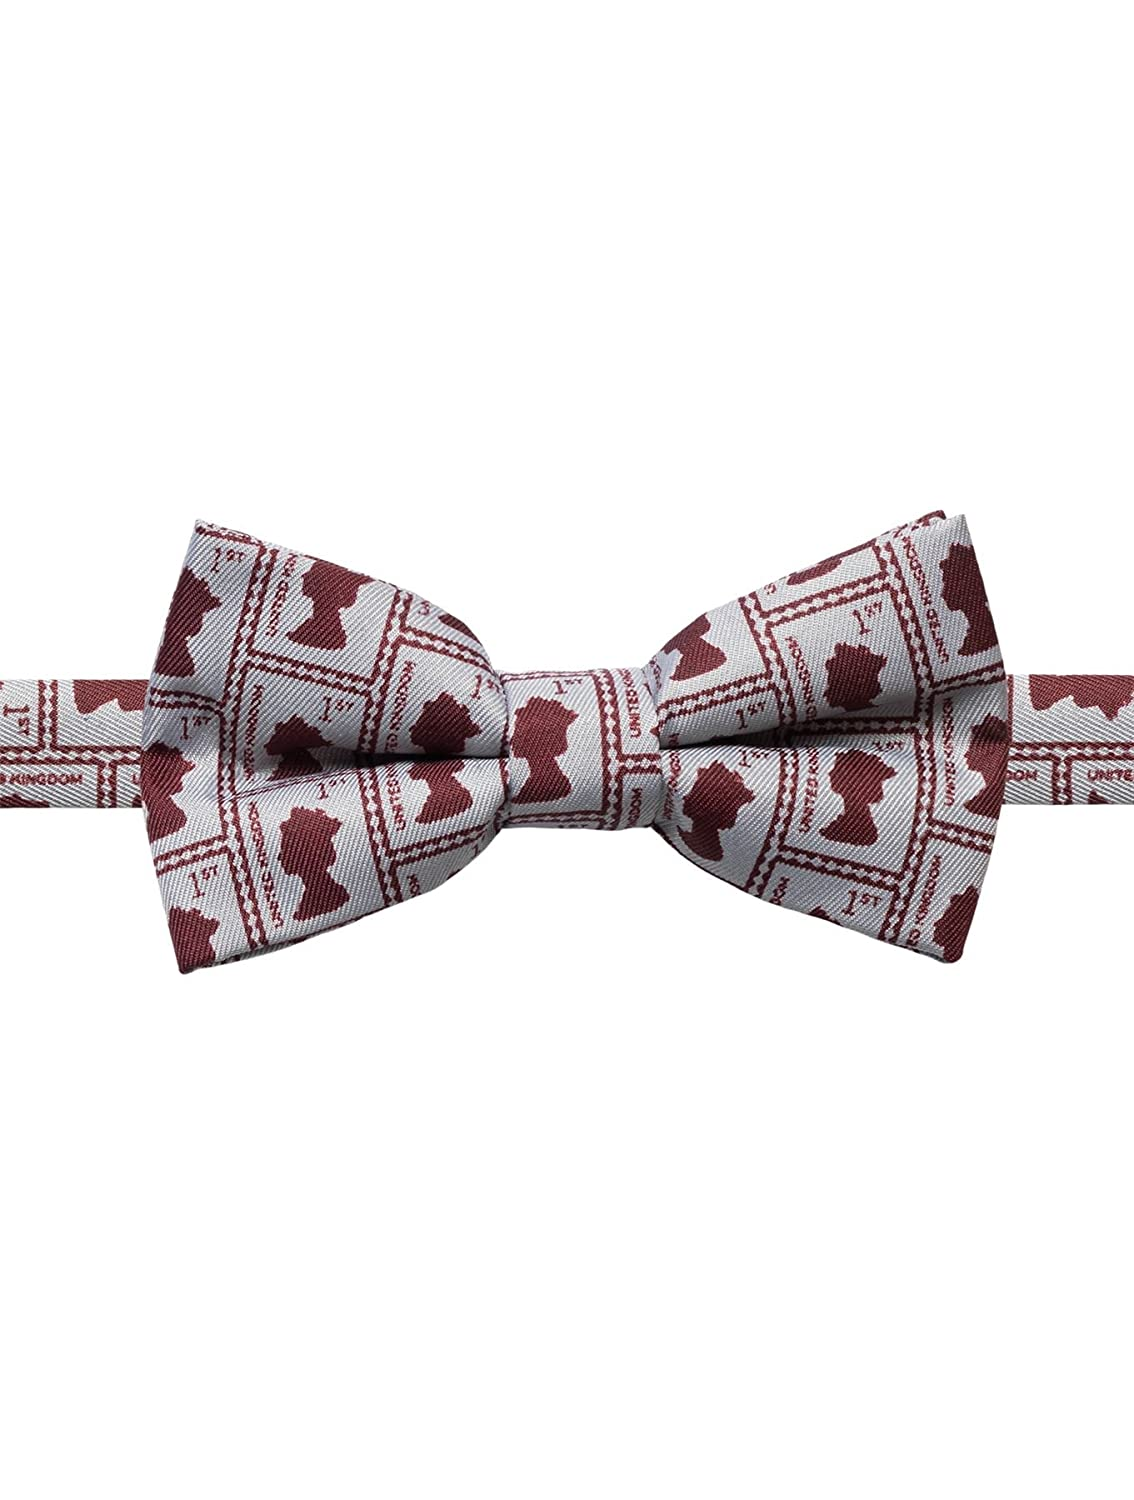 Paisley of London, Boys Royal Stamp Print Dickie Bow, One Size